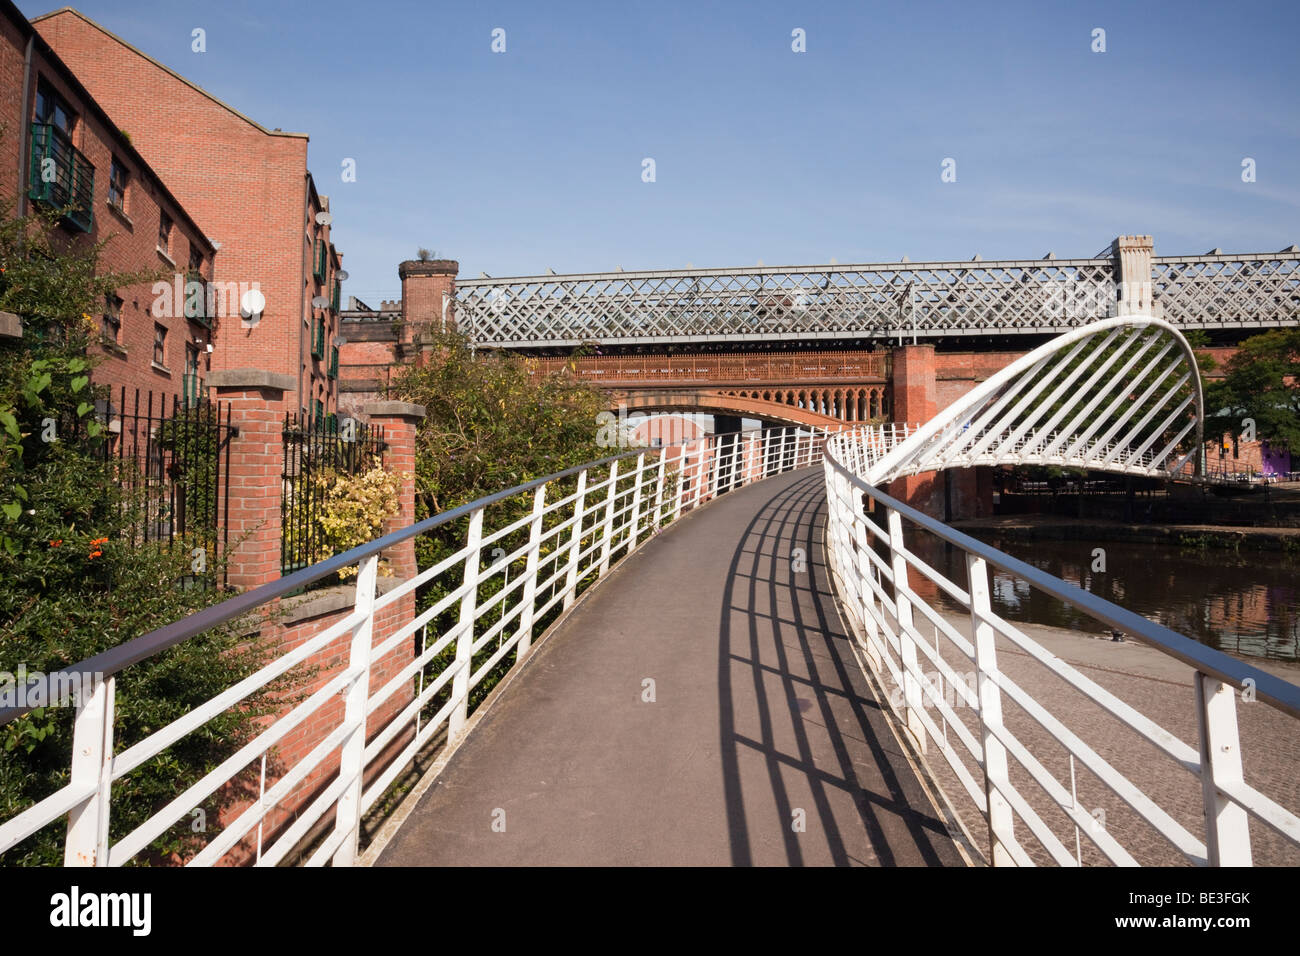 Merchants Bridge footbridge across the Bridgewater Canal. Castlefield Urban Heritage Park, Manchester, England, - Stock Image